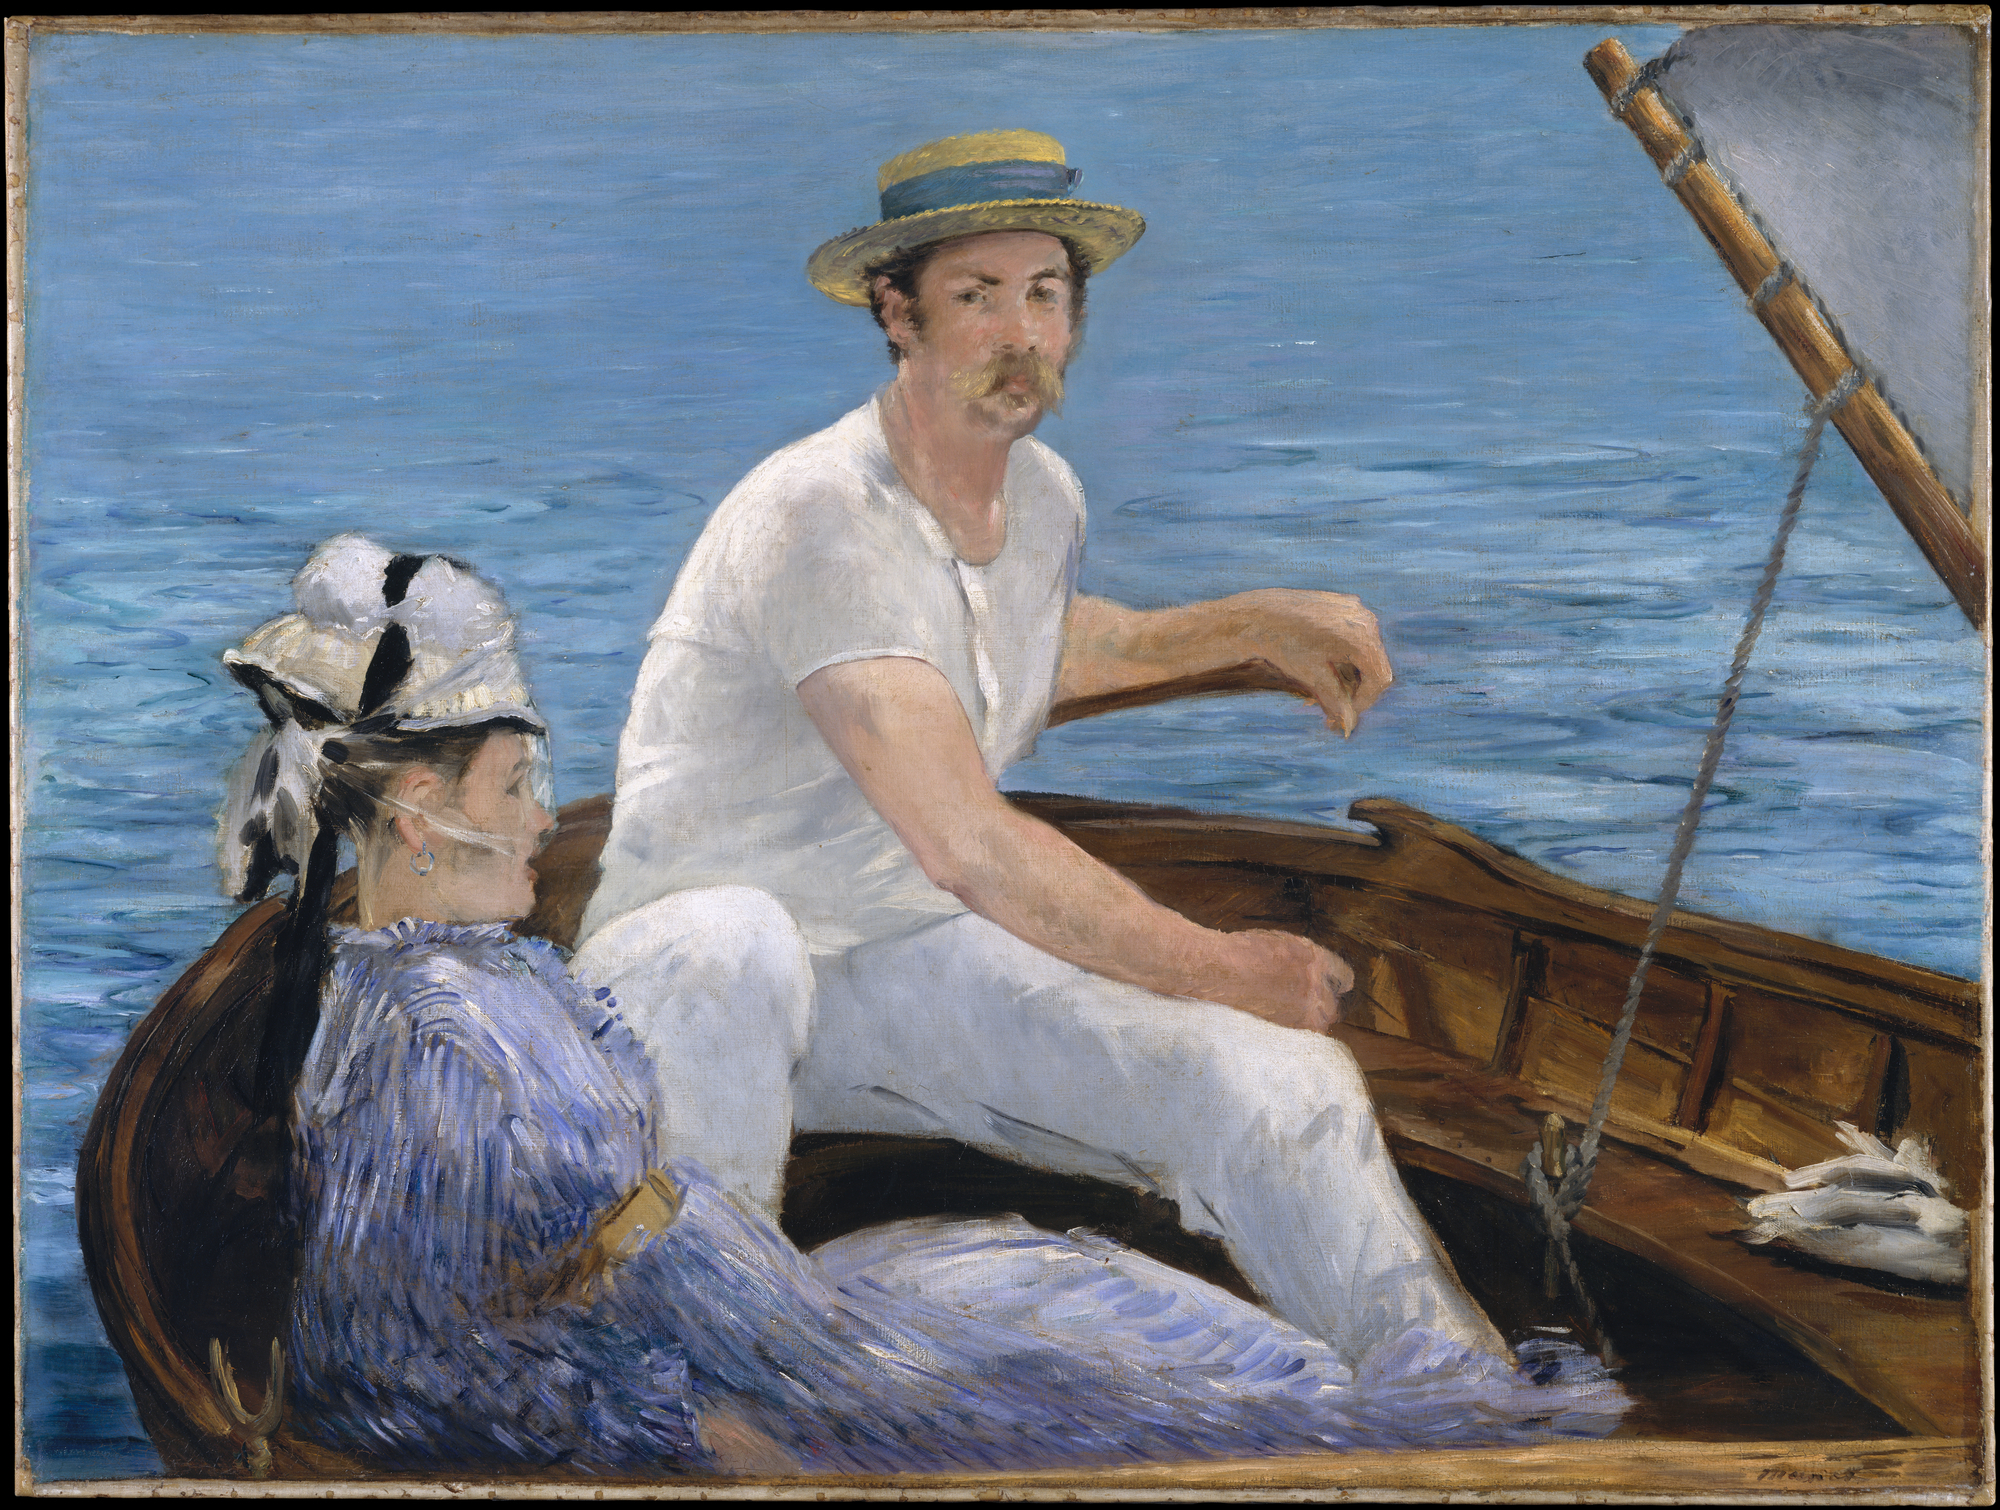 Edouard_Manet_Boating.jpg